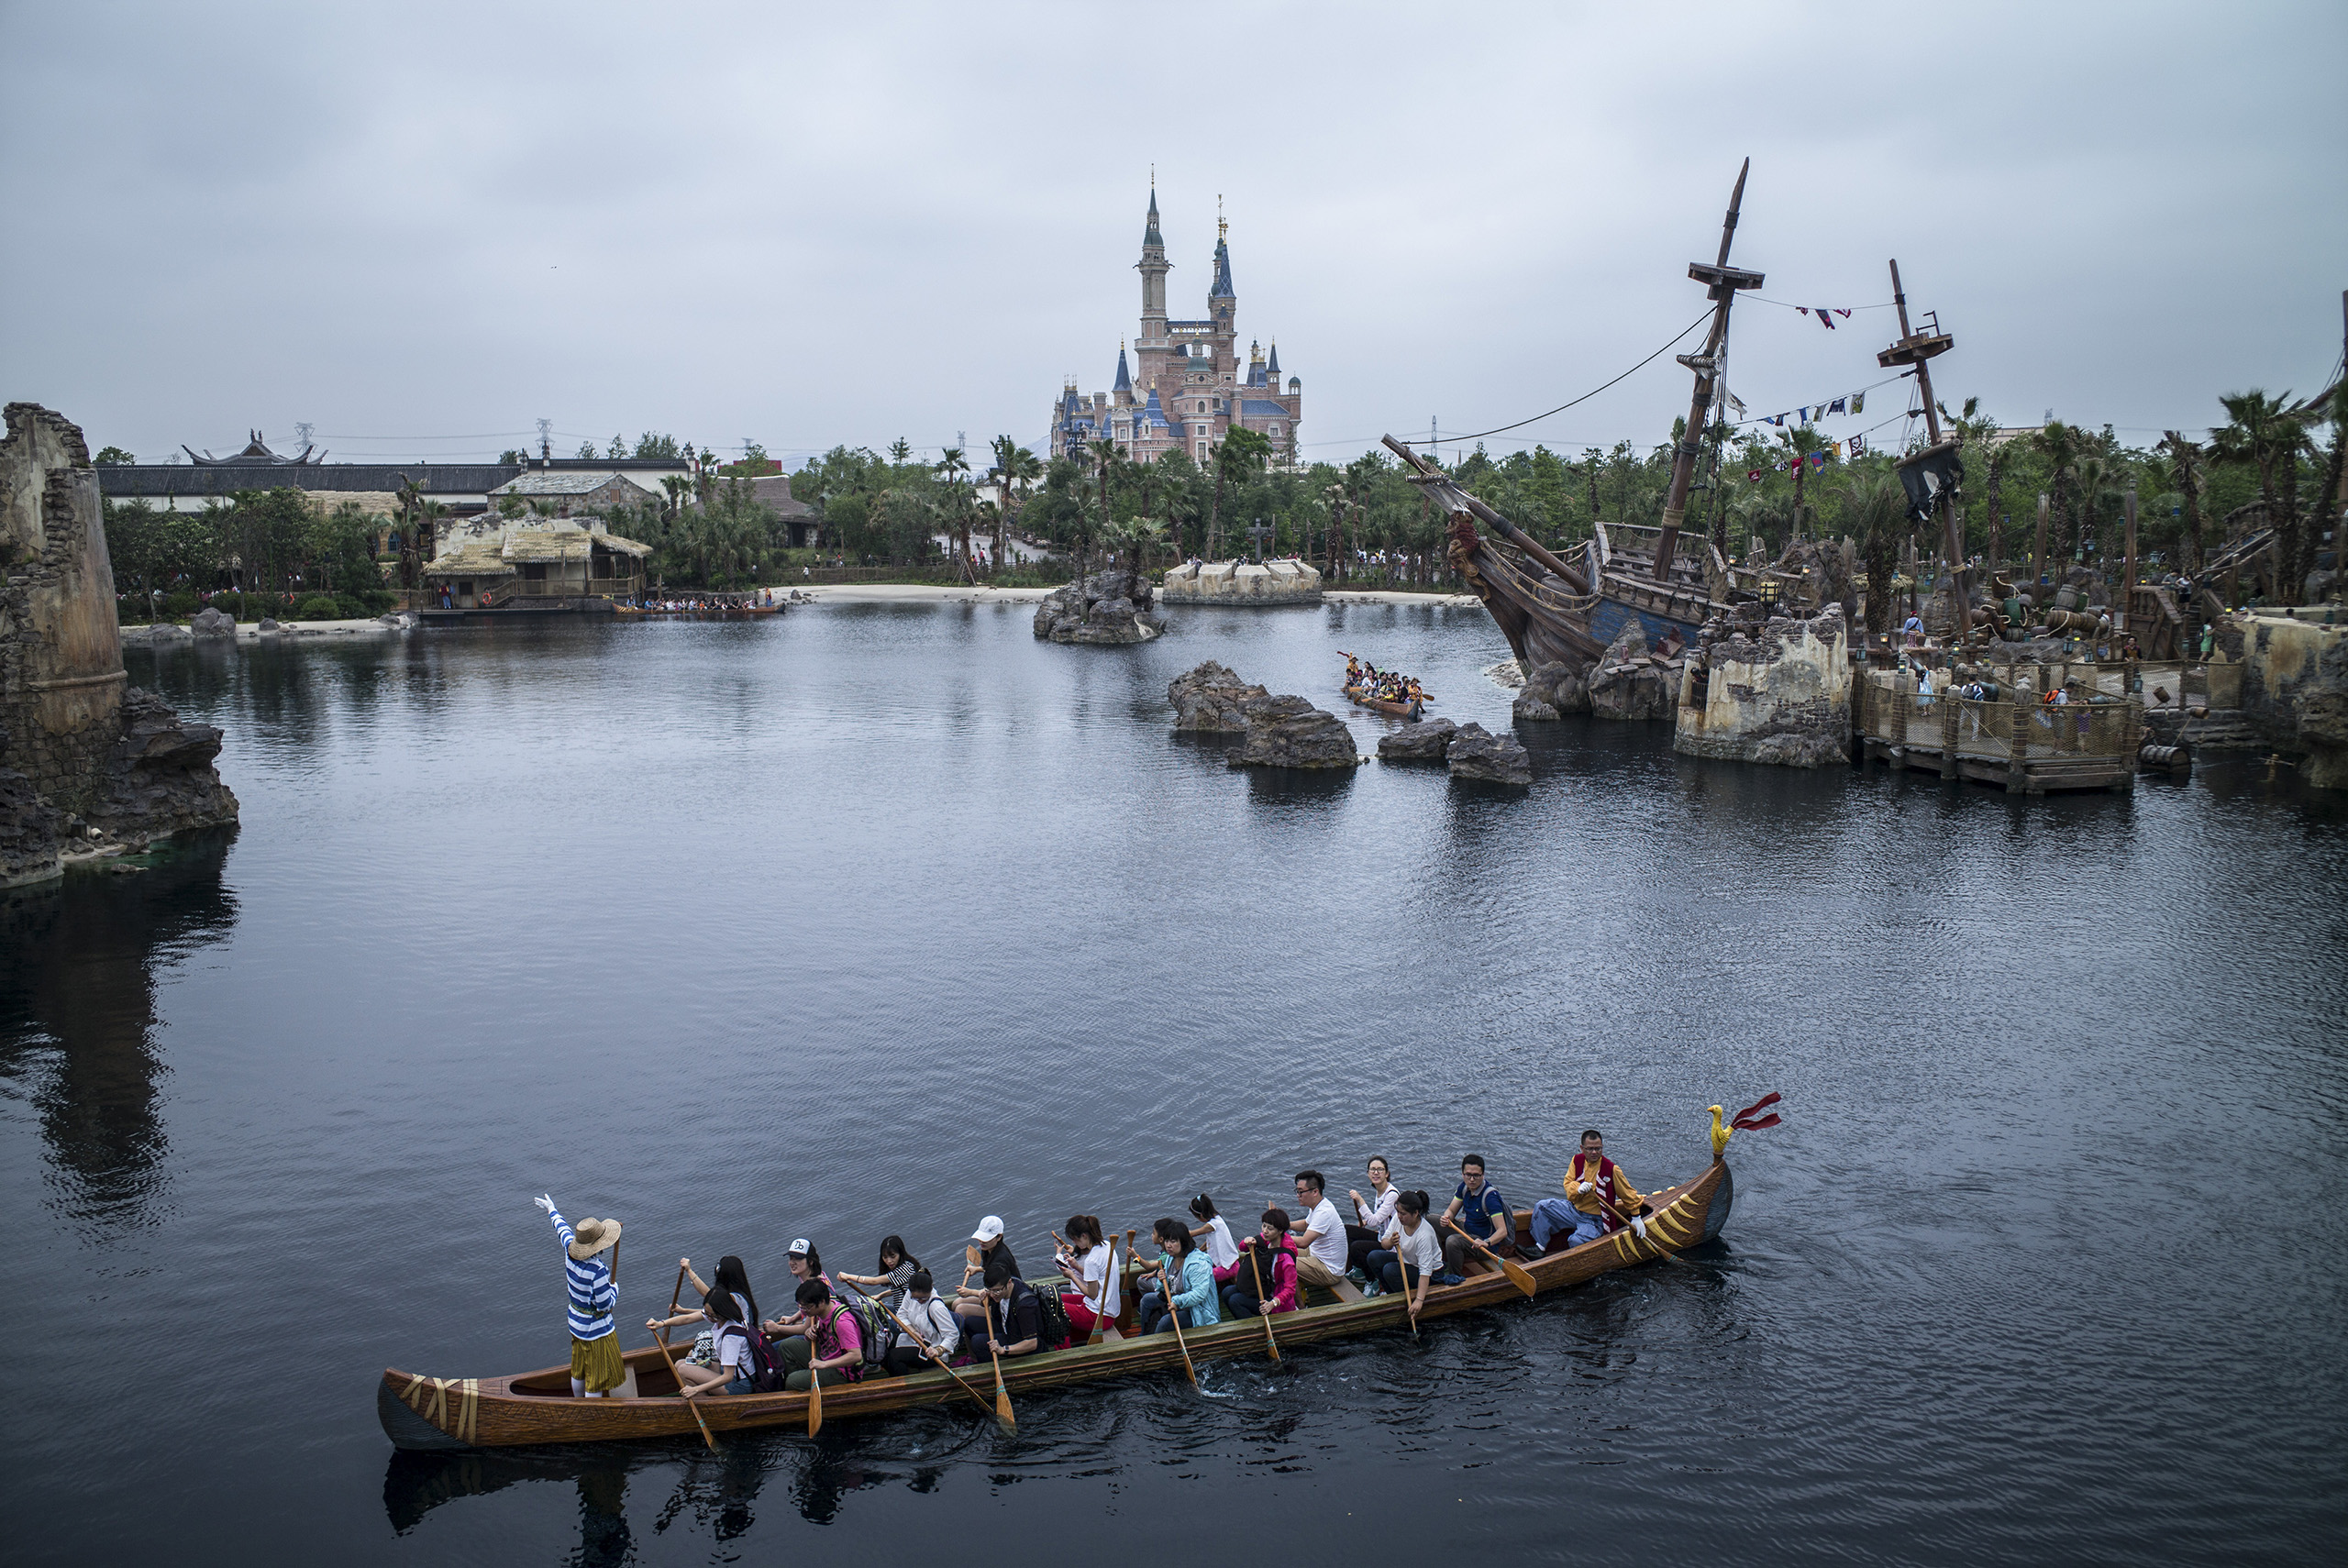 Visitors take the canoe ride at Treasure Cove during a preview of Shanghai Disneyland on June 10, 2016, in Shanghai